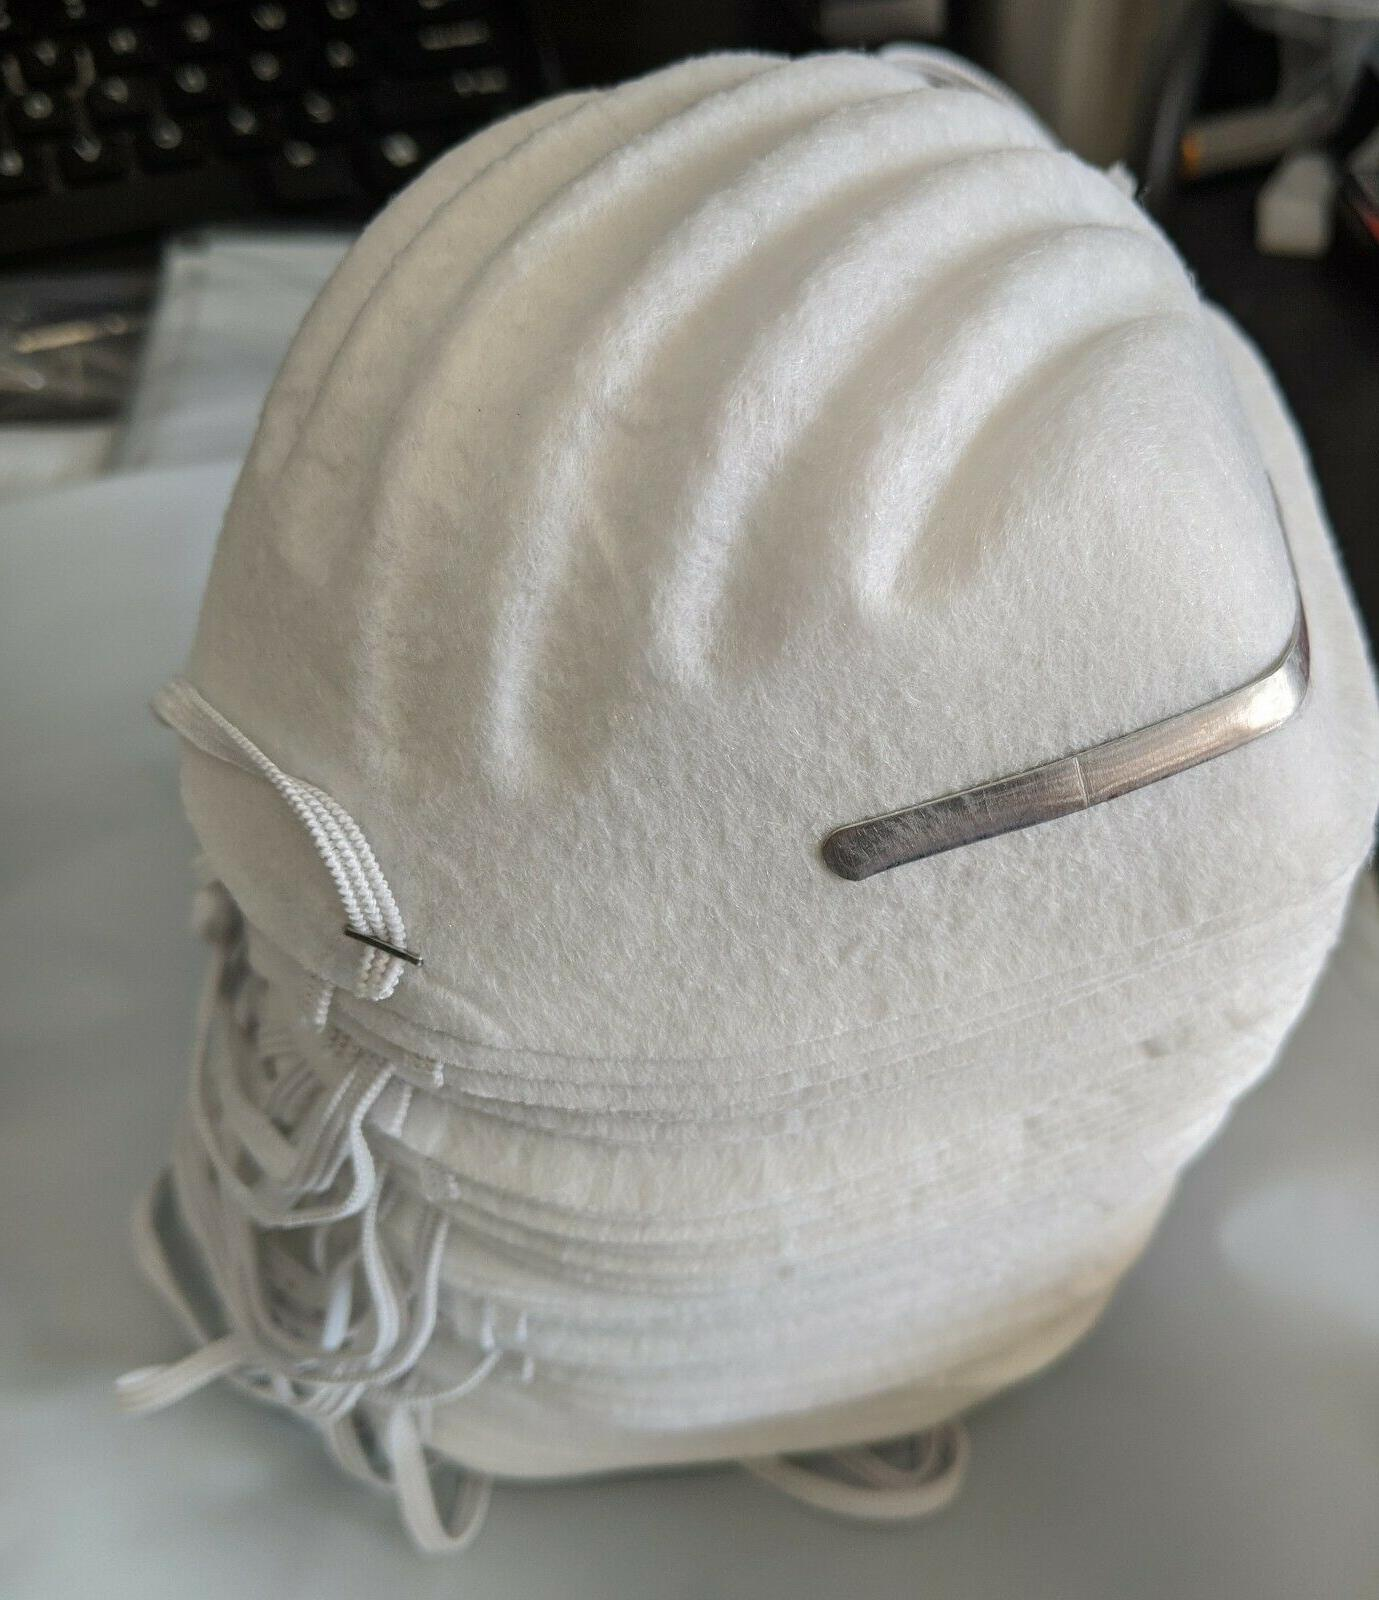 50 Dust Mask Filter Safety